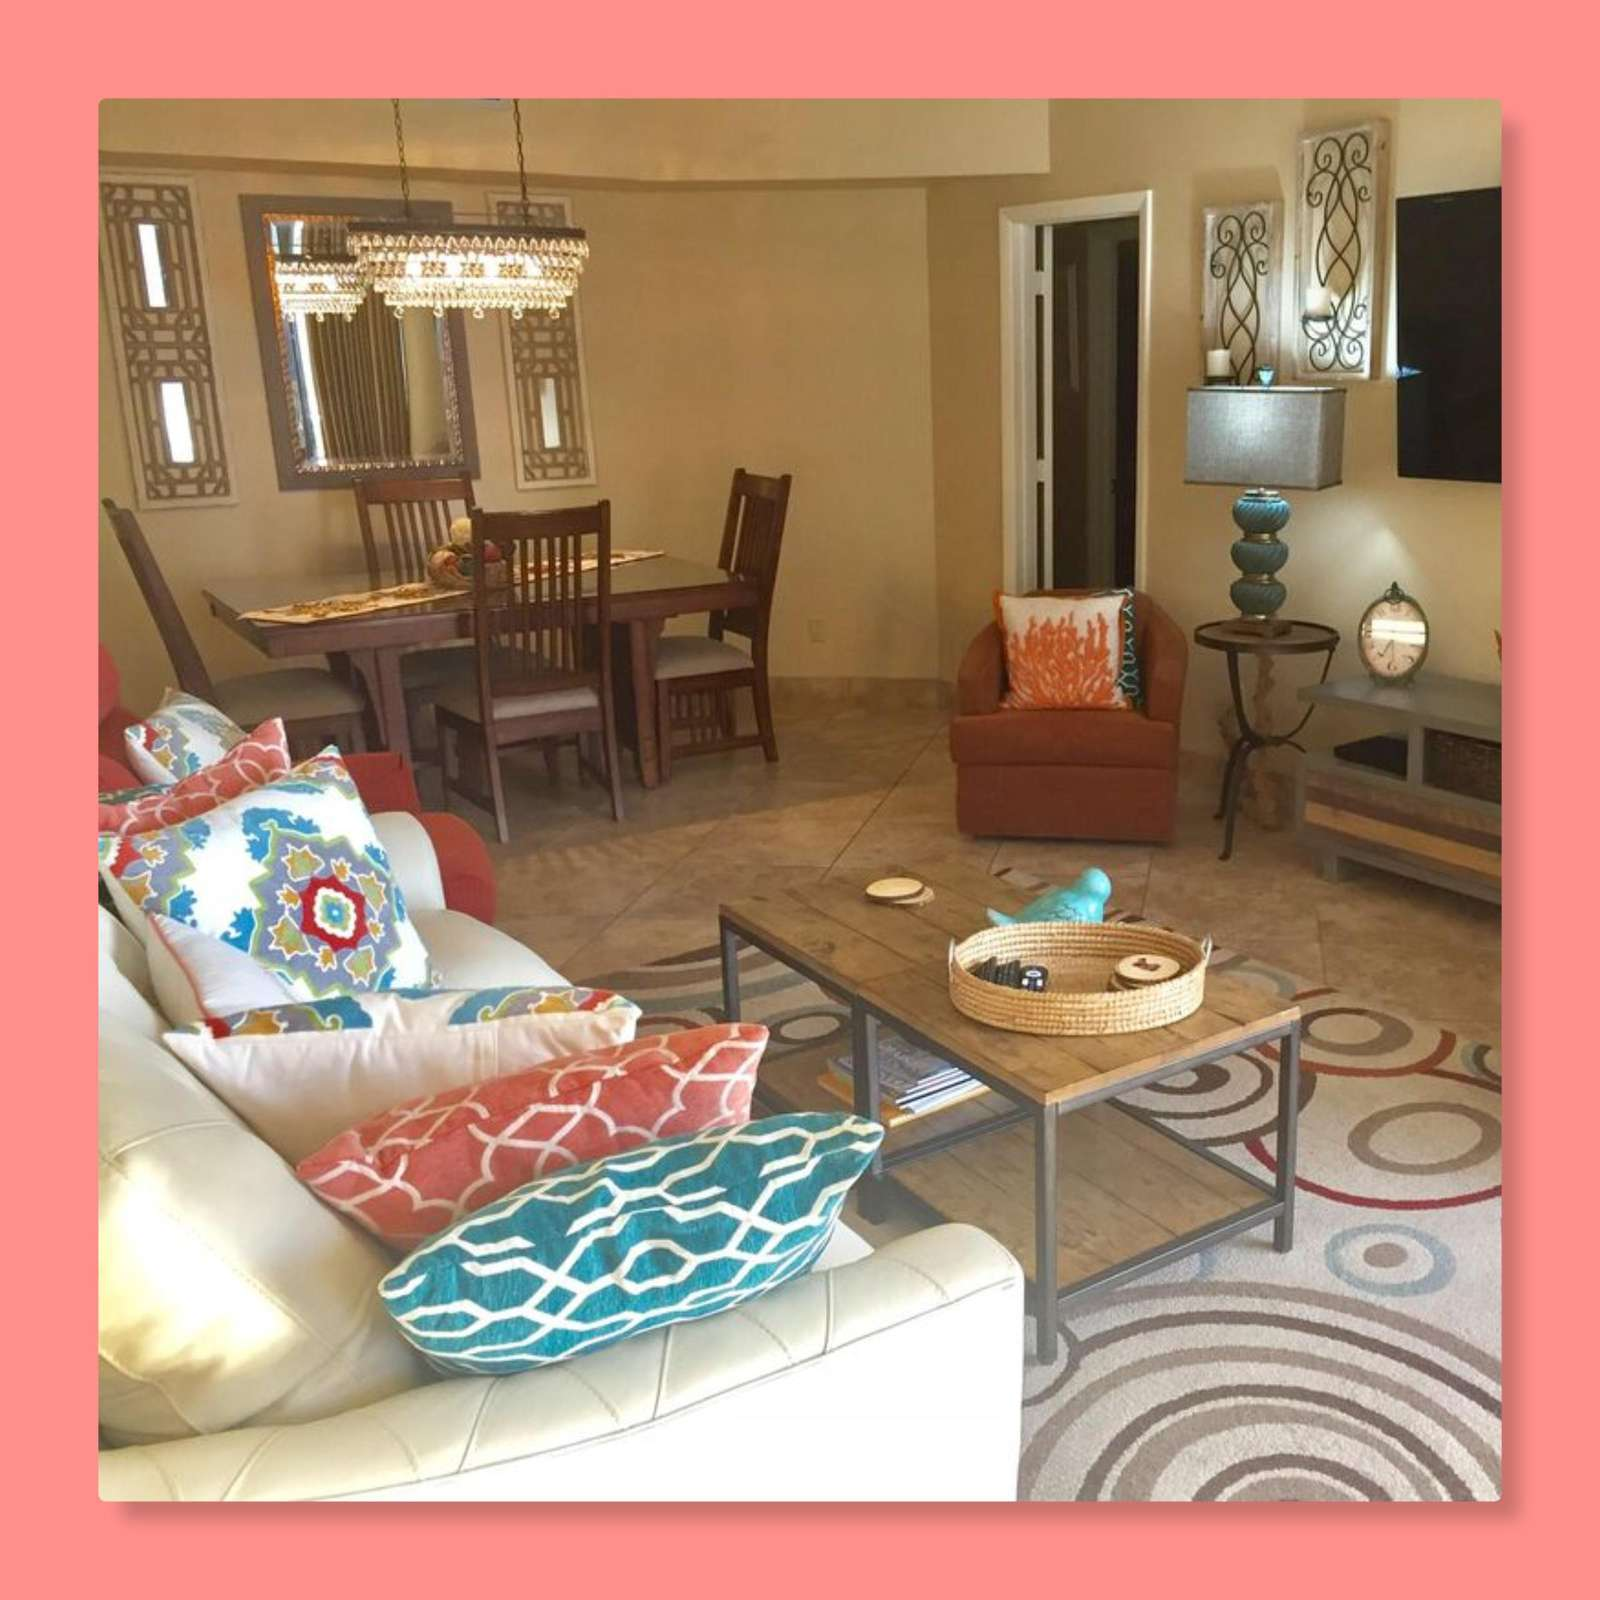 The open living room and dining room provides plenty of space to accommodate your group.